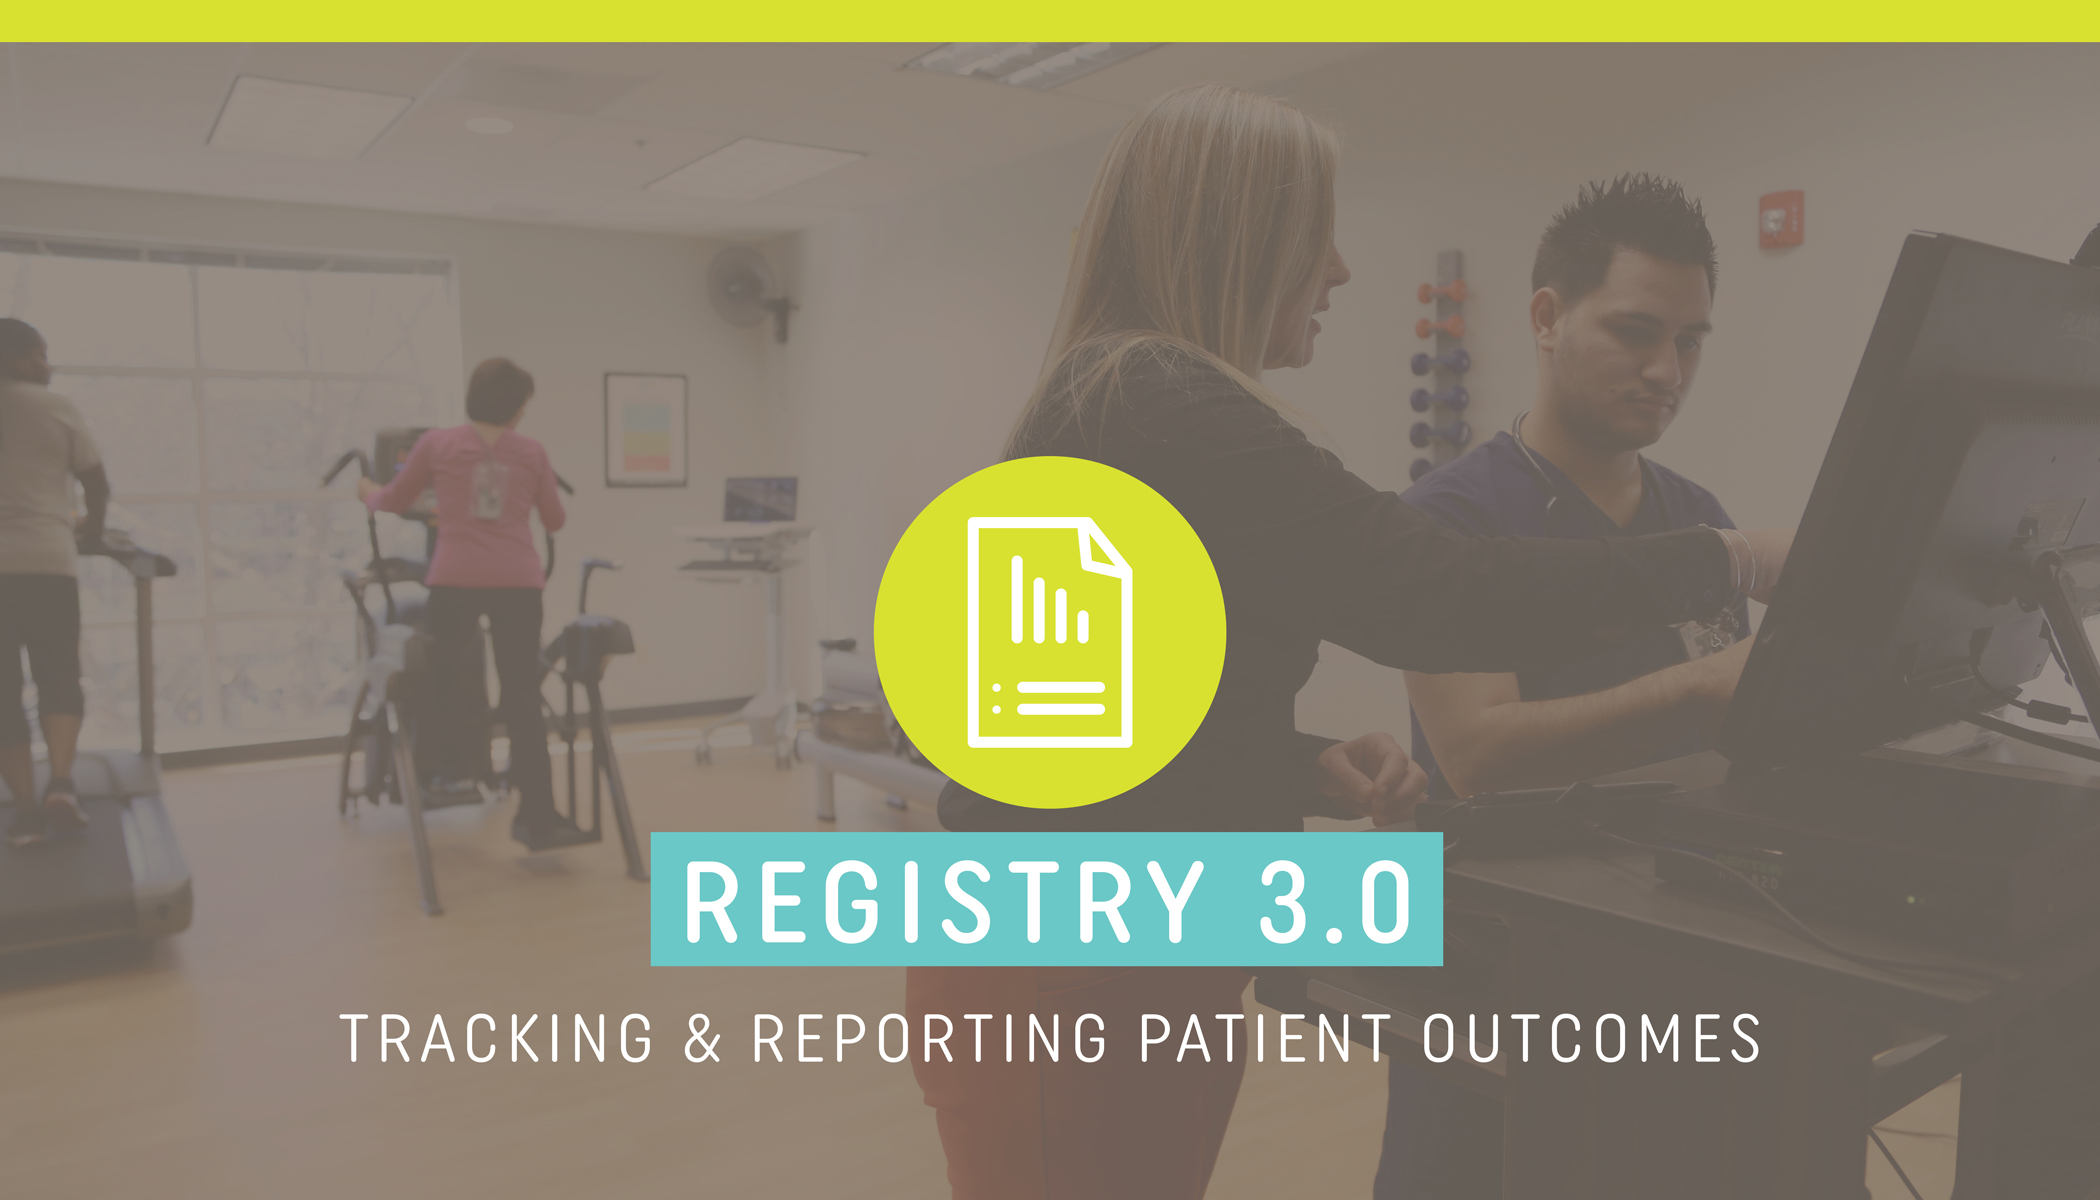 Registry 3.0 | Tracking & Reporting Patient Outcomes